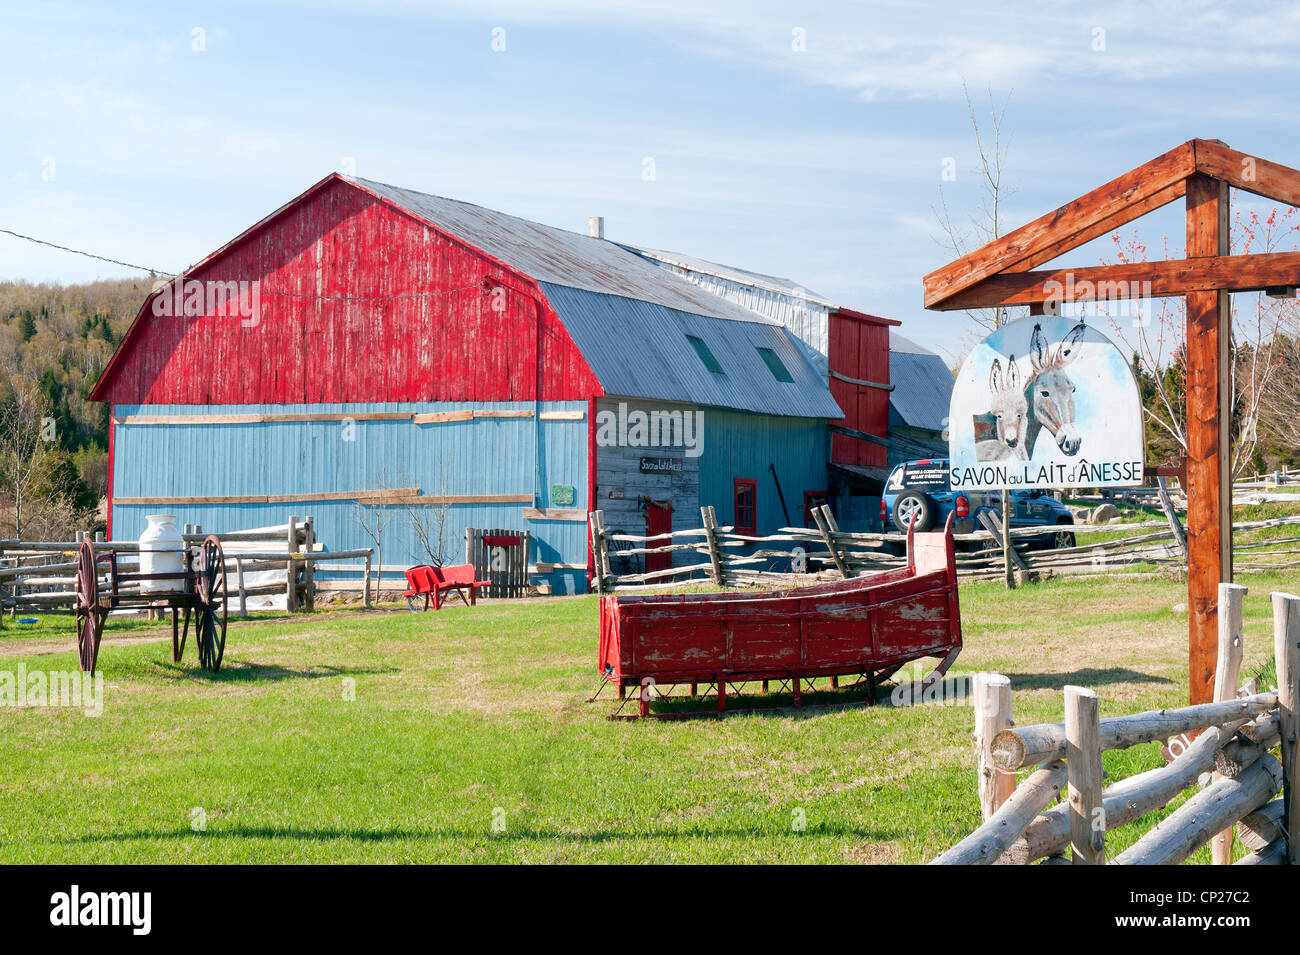 Donkey farm in Port-au-Persil, region of Charlevoix, province of Quebec, Canada. - Stock Image